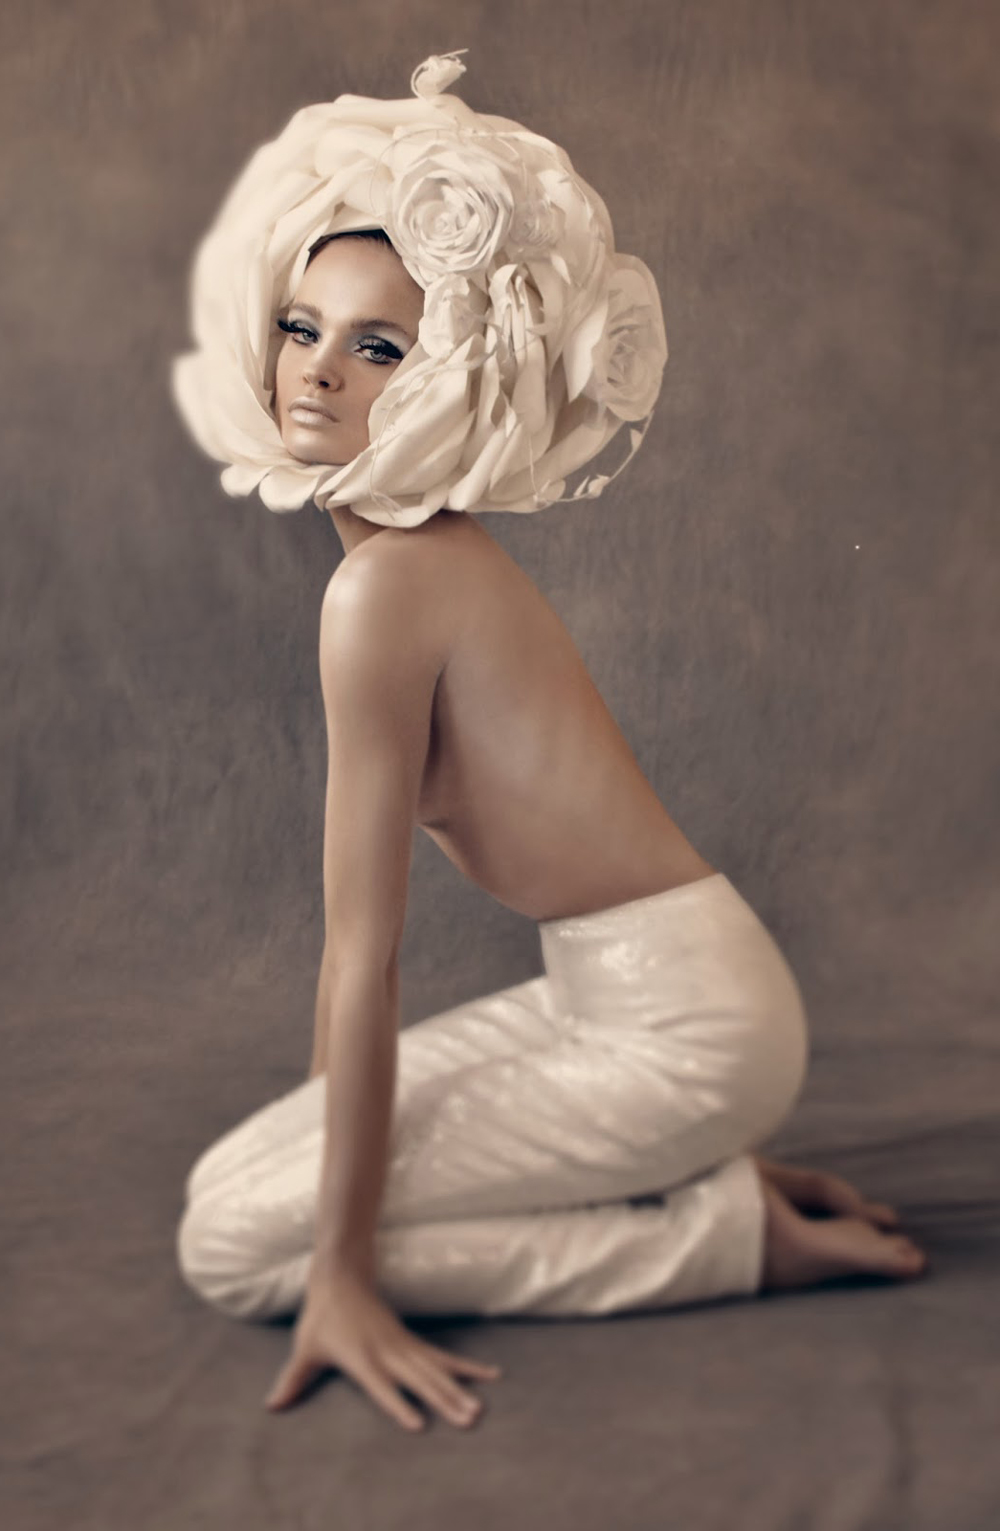 Natalia Vodianova as Veruschka photographed by Steven Meisel and styled by Grace Coddington for The great pretender / Vogue US May 2009 / via fashioned by love british fashion blog